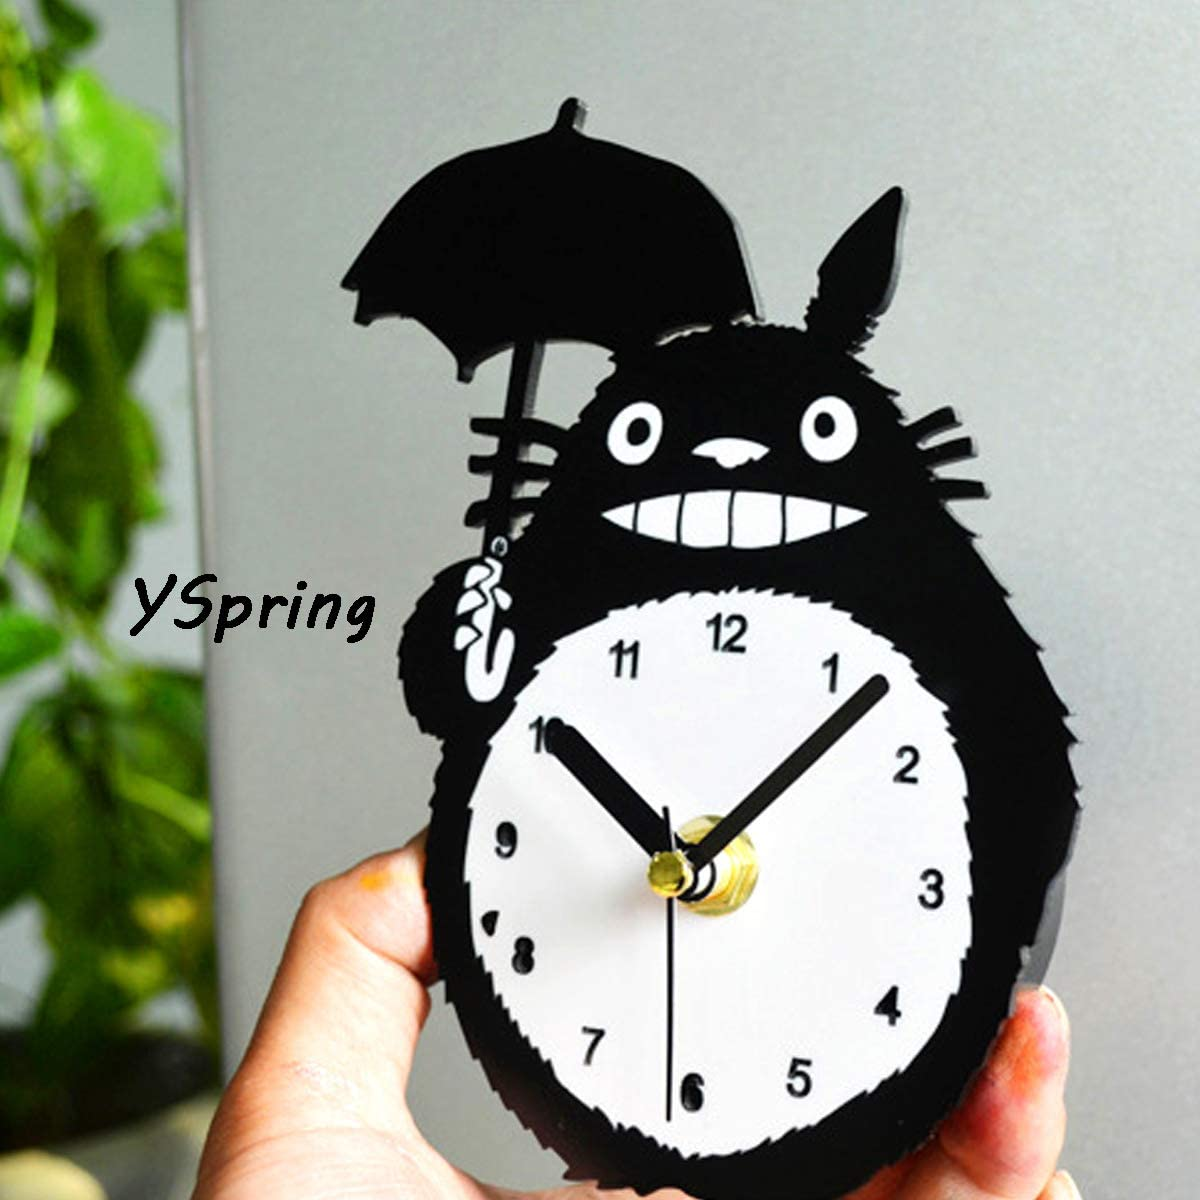 YSpring Fashion Anime Totoro Fridge Clock Cute Design Refrigerator Magnetic Wall Clocks(battery is not included)